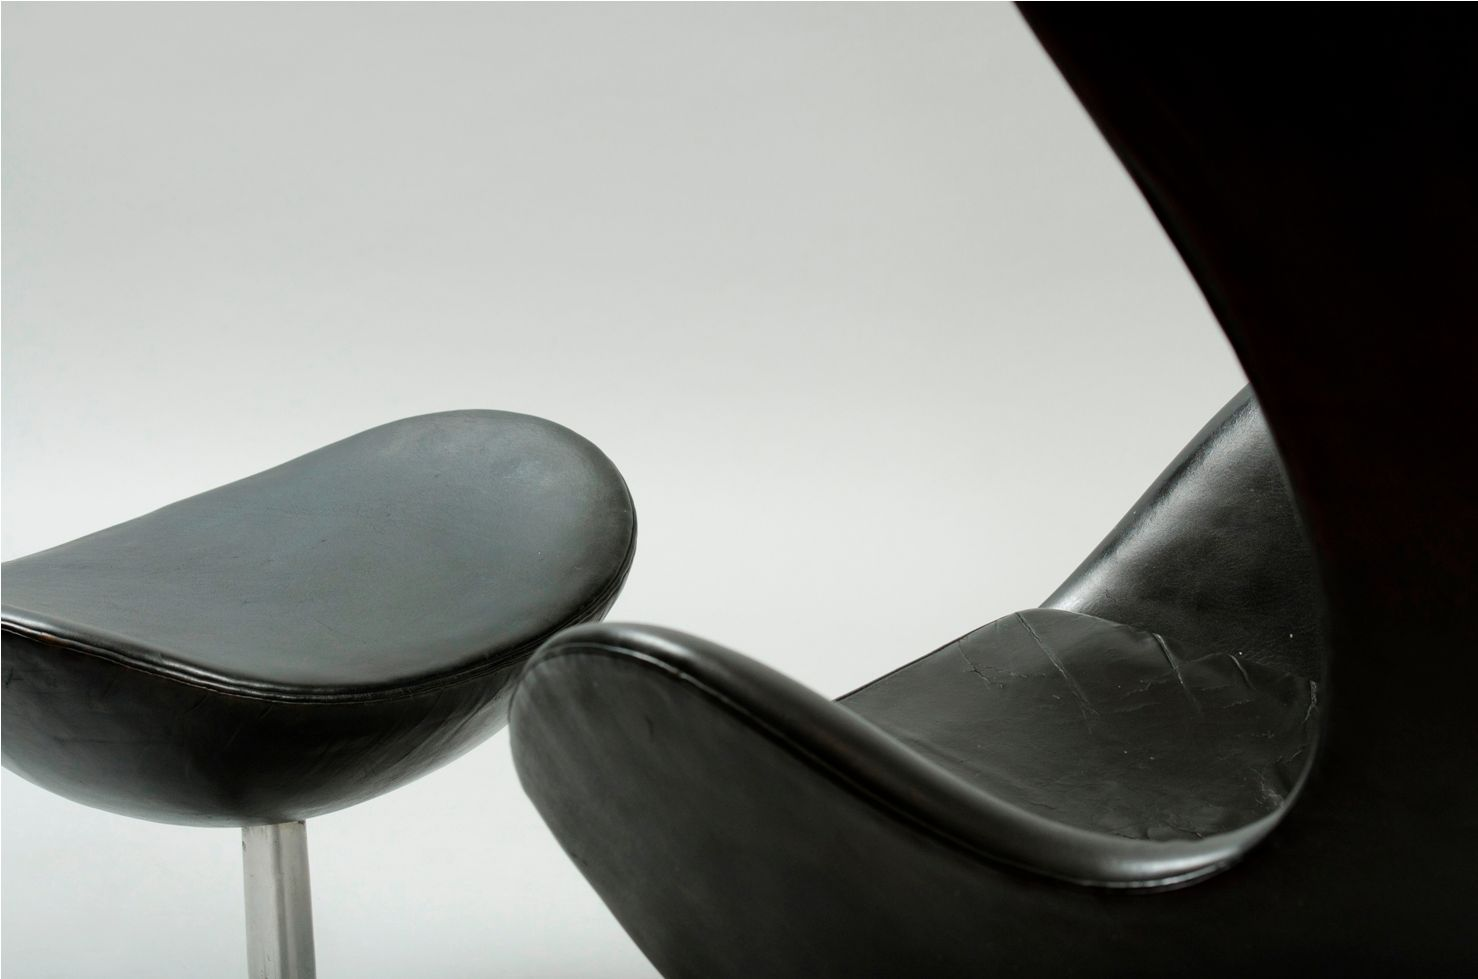 Pouf Design Egg Pouf Jacobsen : Egg chair and ottoman by arne jacobsen for fritz hansen